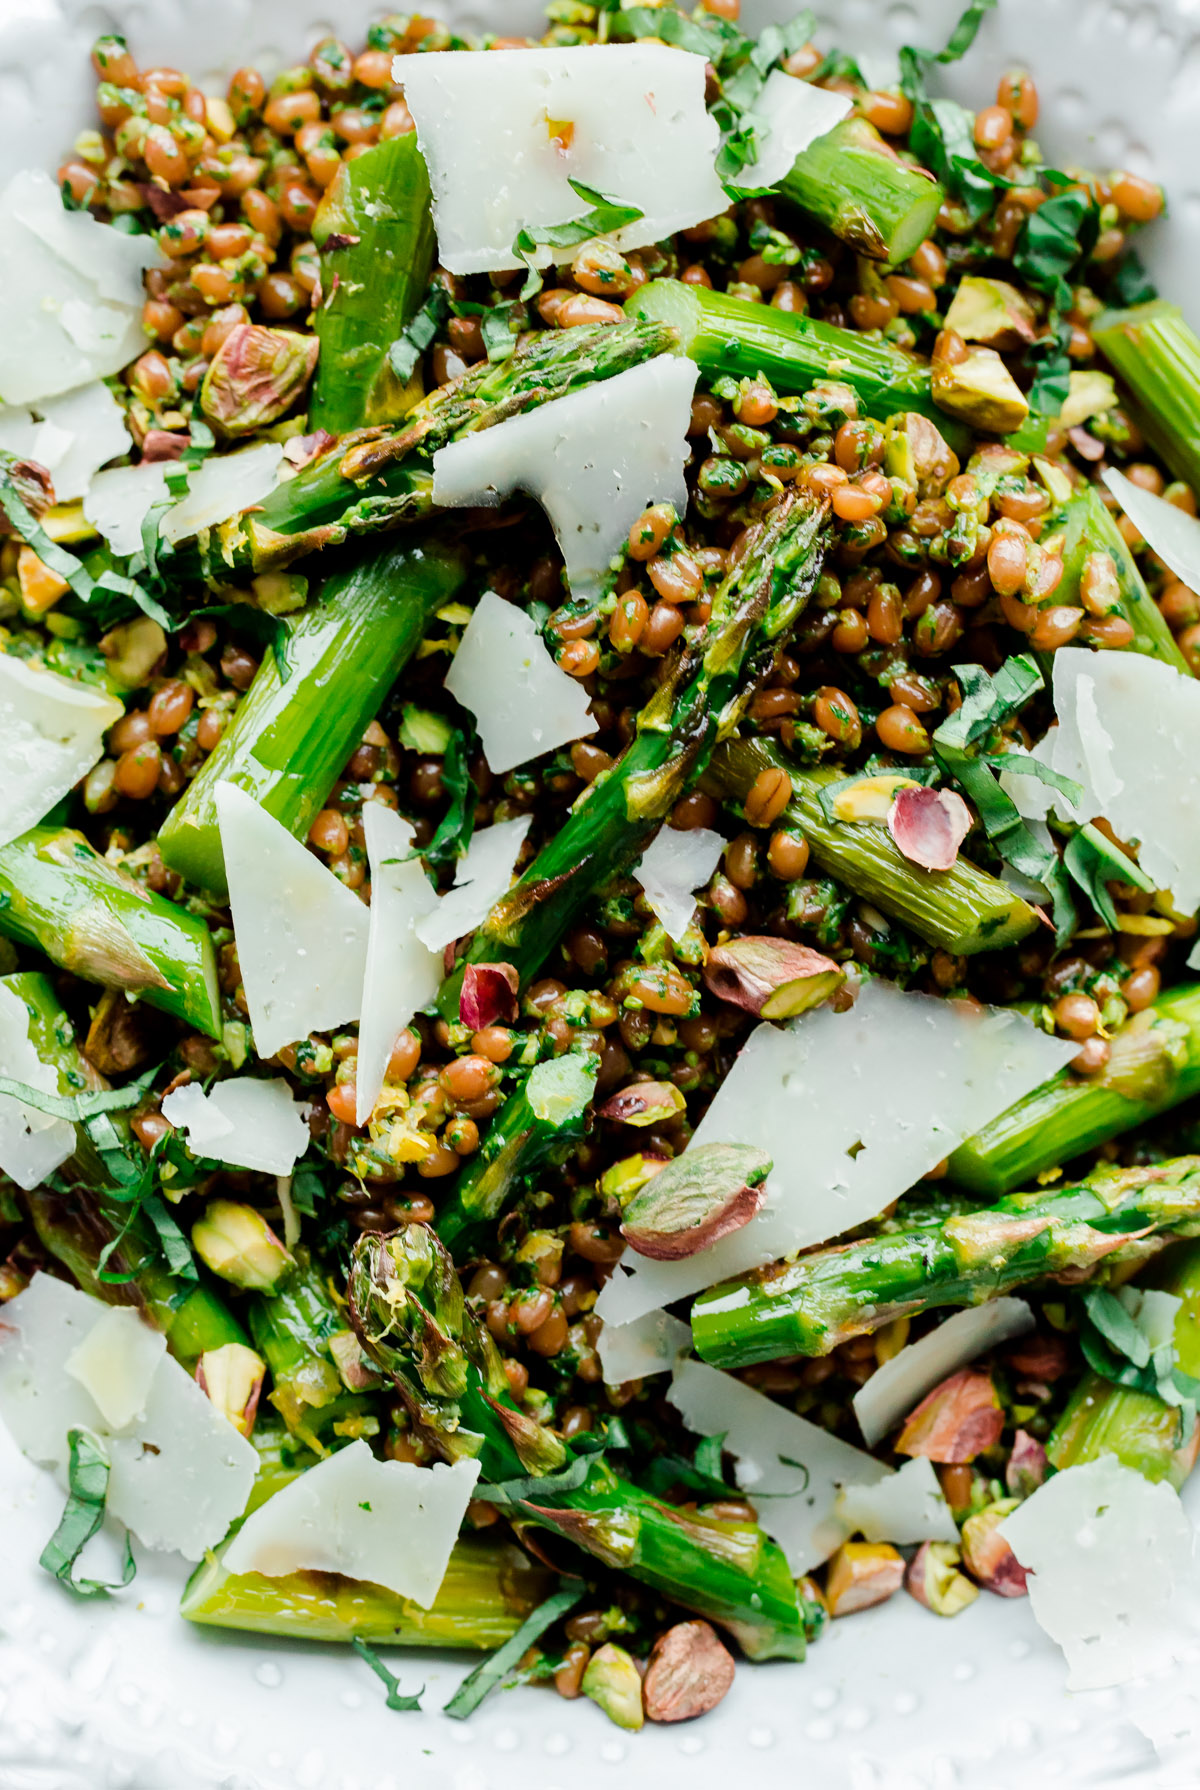 arugula-pistachio-pesto-wheat-berry-salad-with-roasted-asparagus-1-17 ...